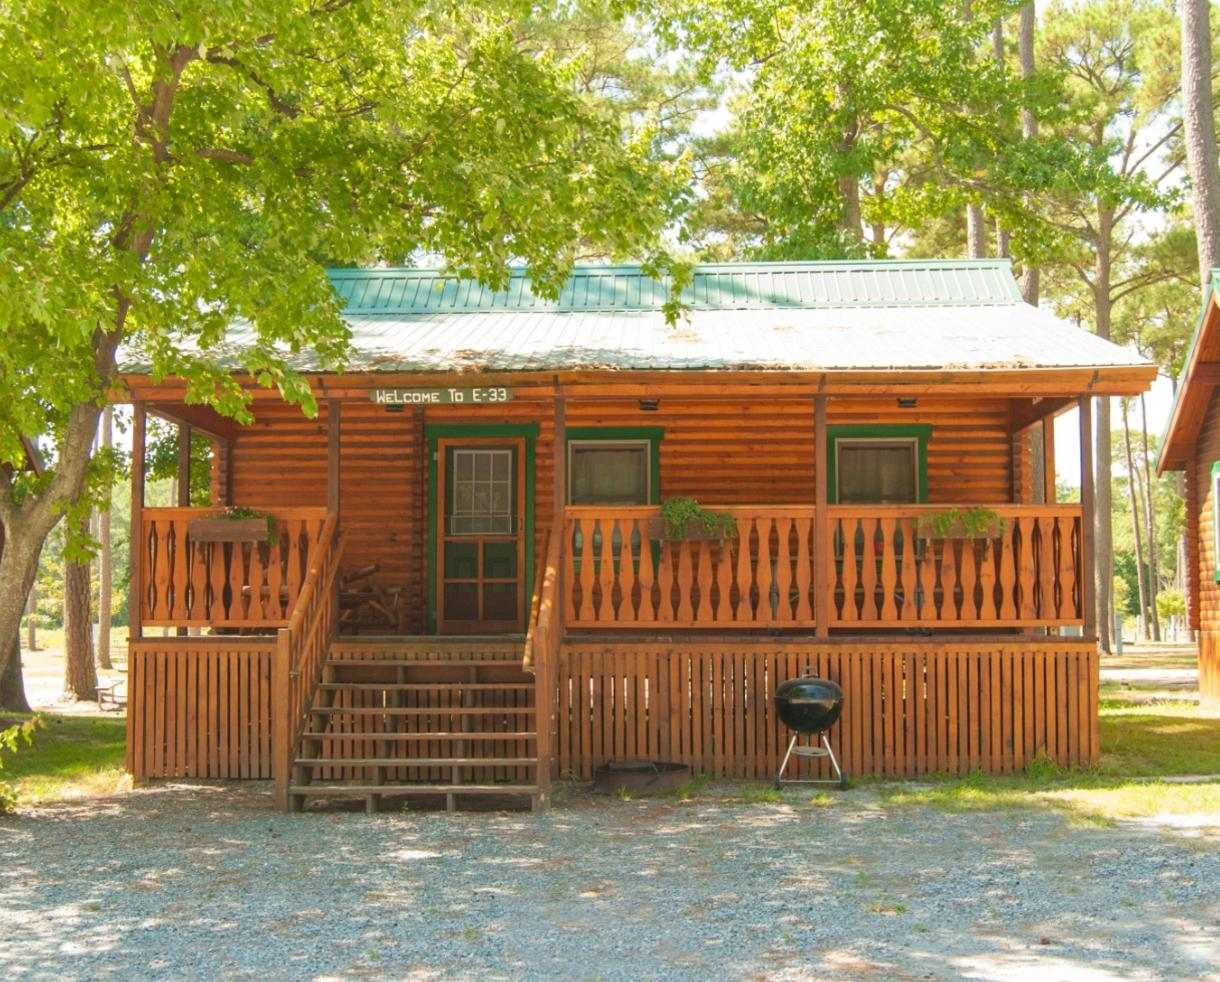 2-Night Stay in a Barebones Cabin at Frontier Town Valid for Sundays - Thursdays ONLY from April 2 - May 24, 2018